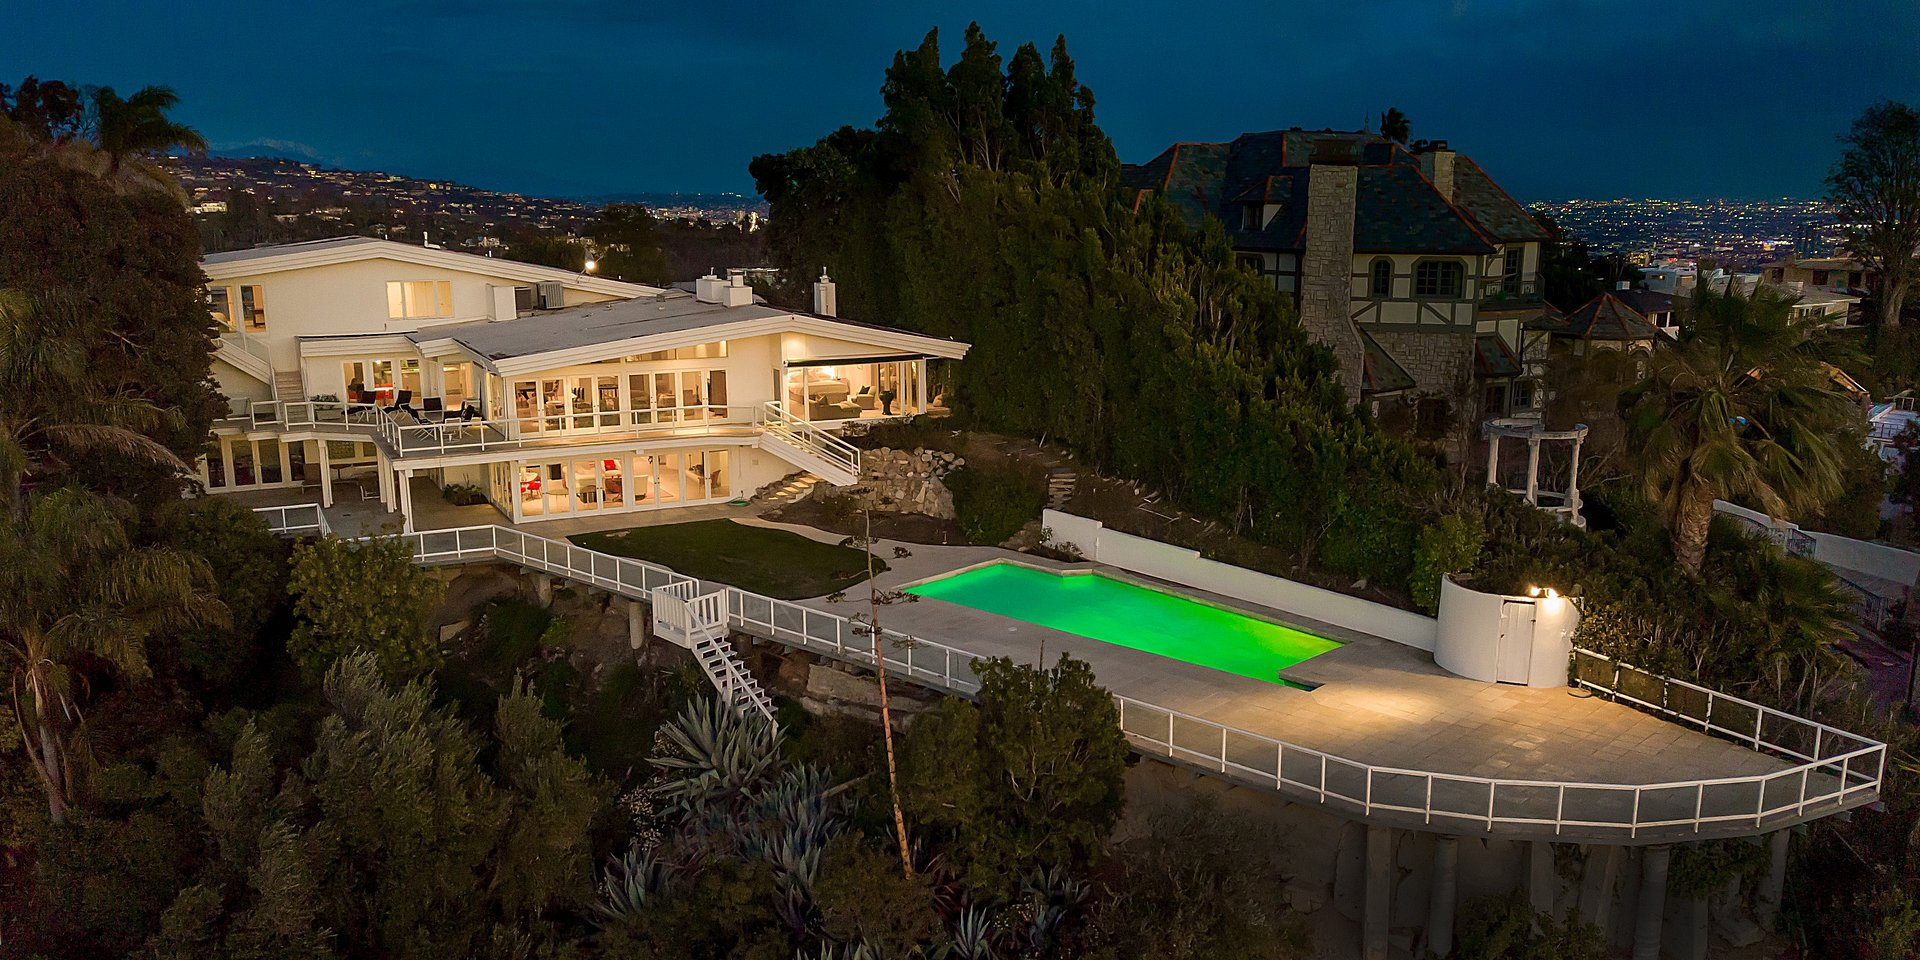 Coldwell Banker Residential Brokerage Lists Bel Air Property for $8.995 Million